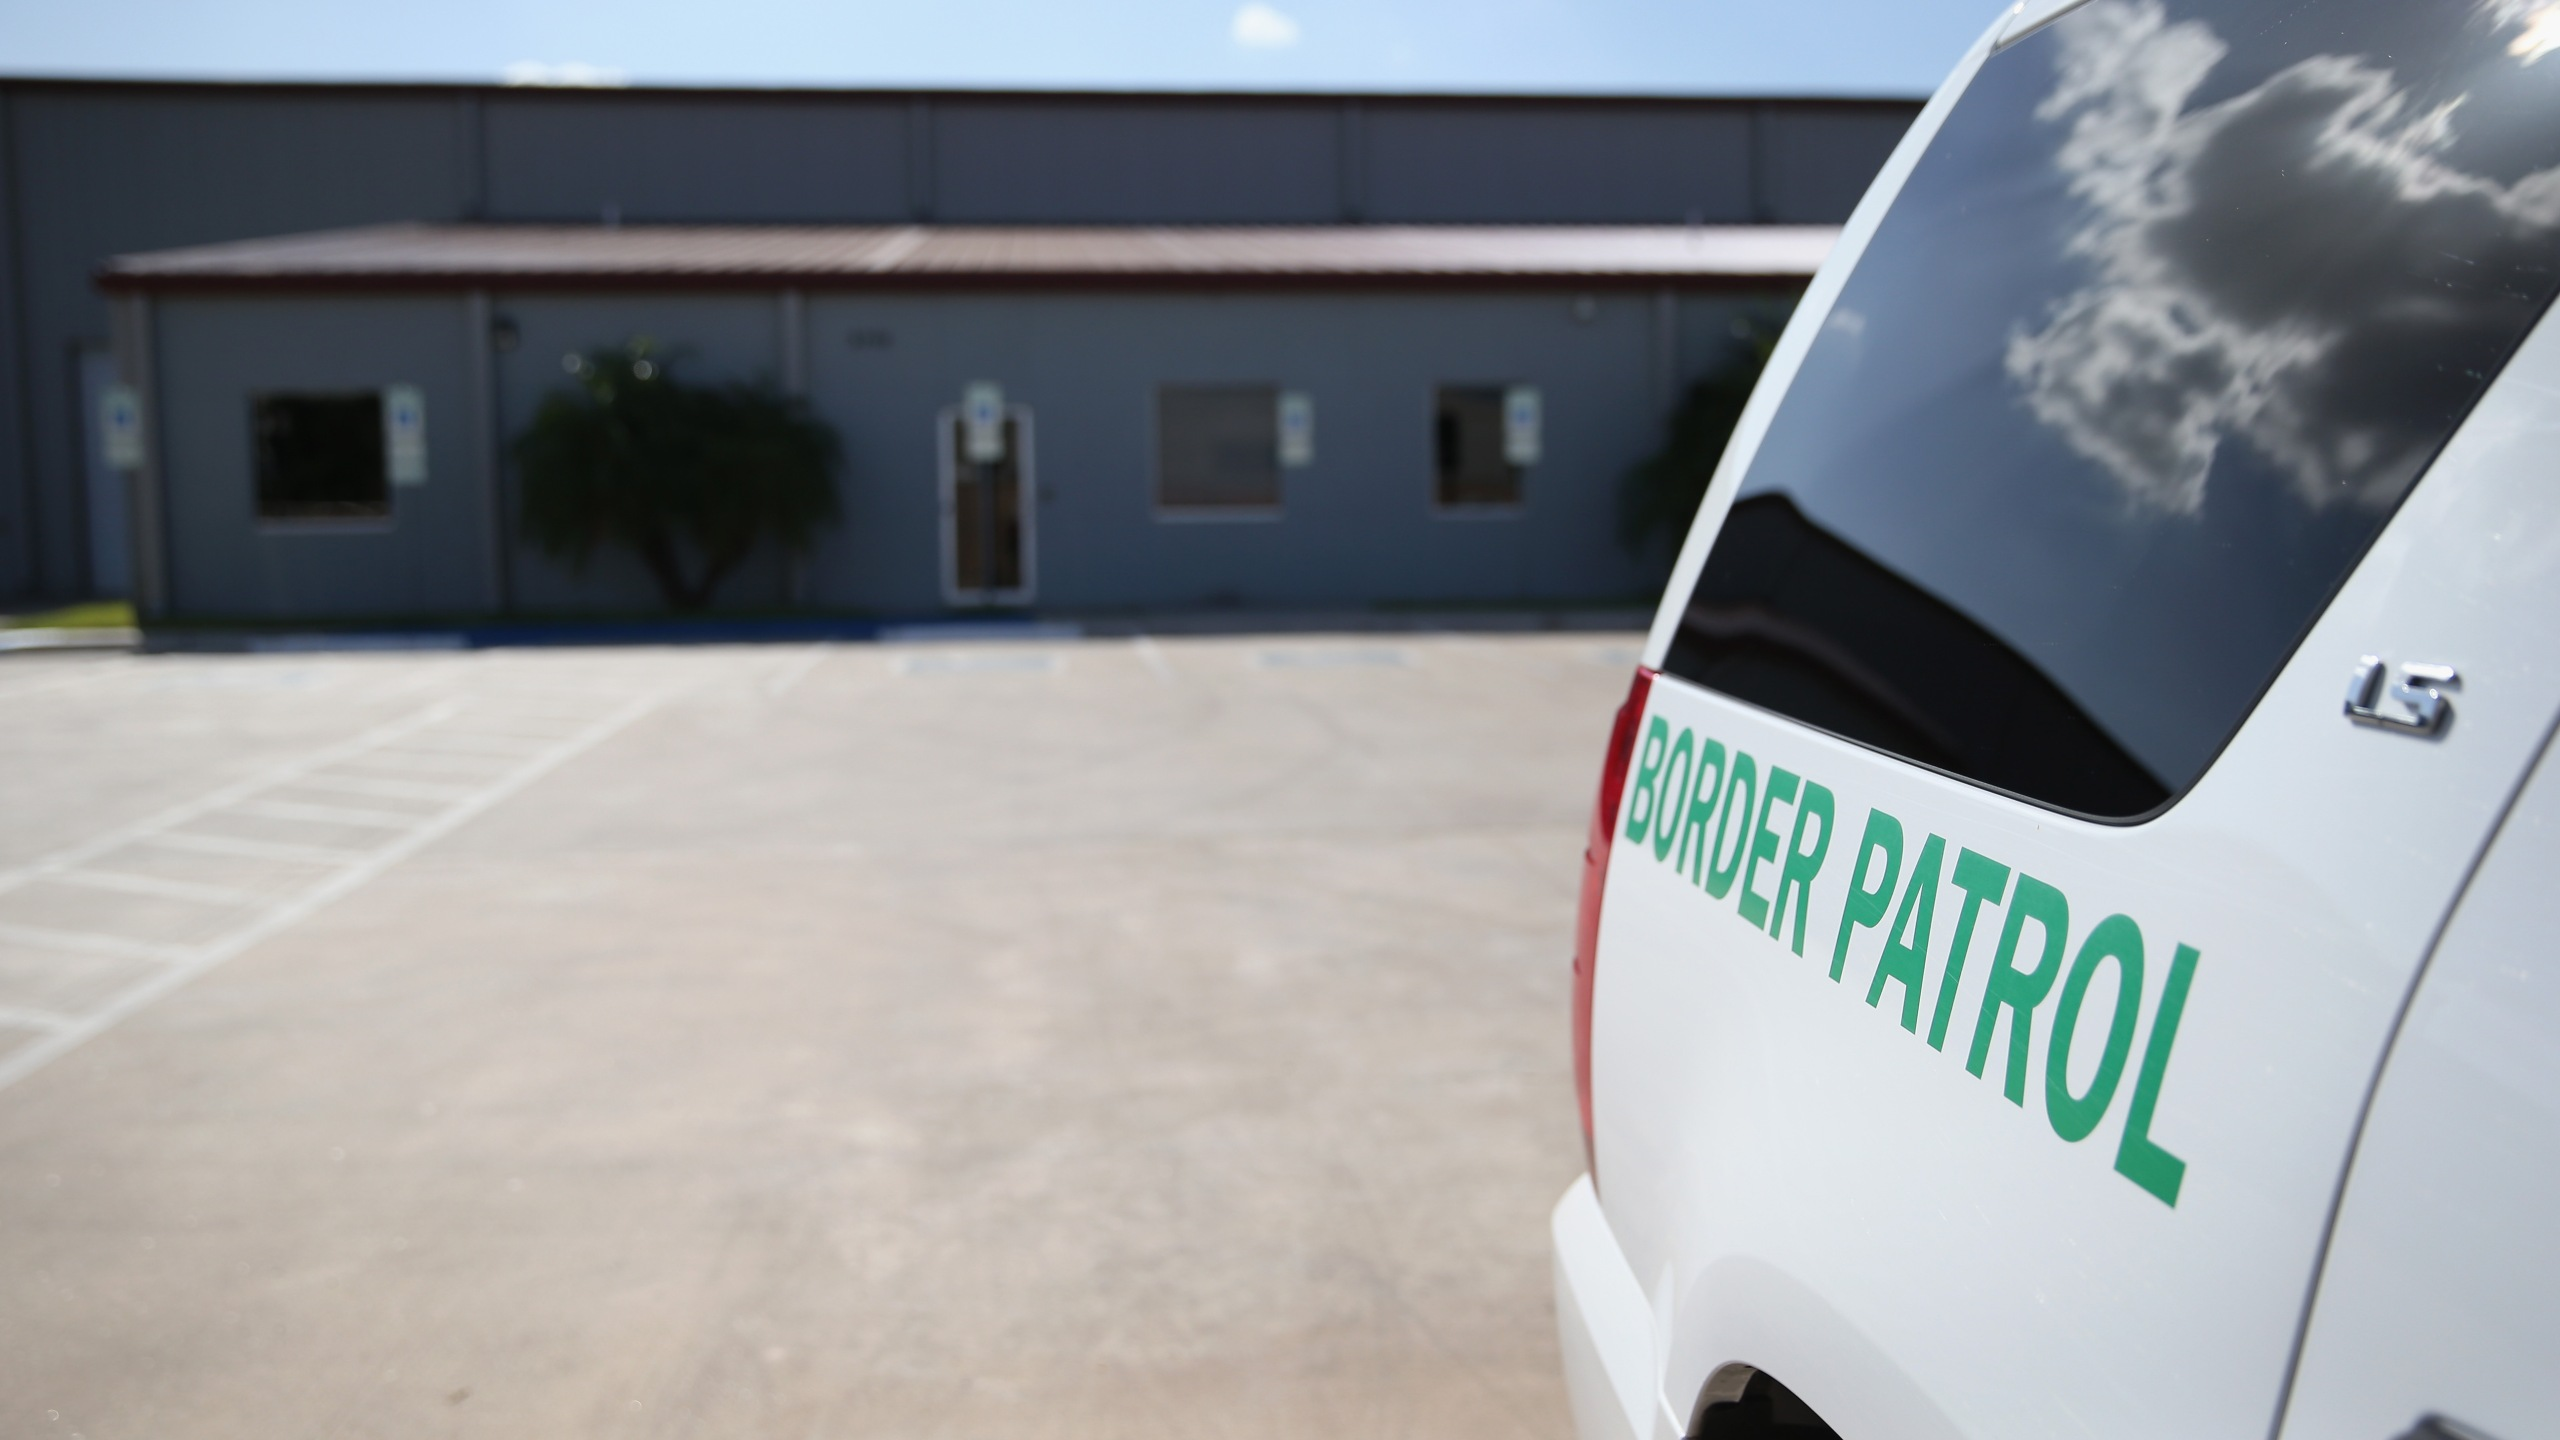 A U.S. Border Patrol vehicle sits parked outside a detention facility for unaccompanied minors on Sept. 8, 2014 in McAllen, Texas. (Credit: John Moore/Getty Images)